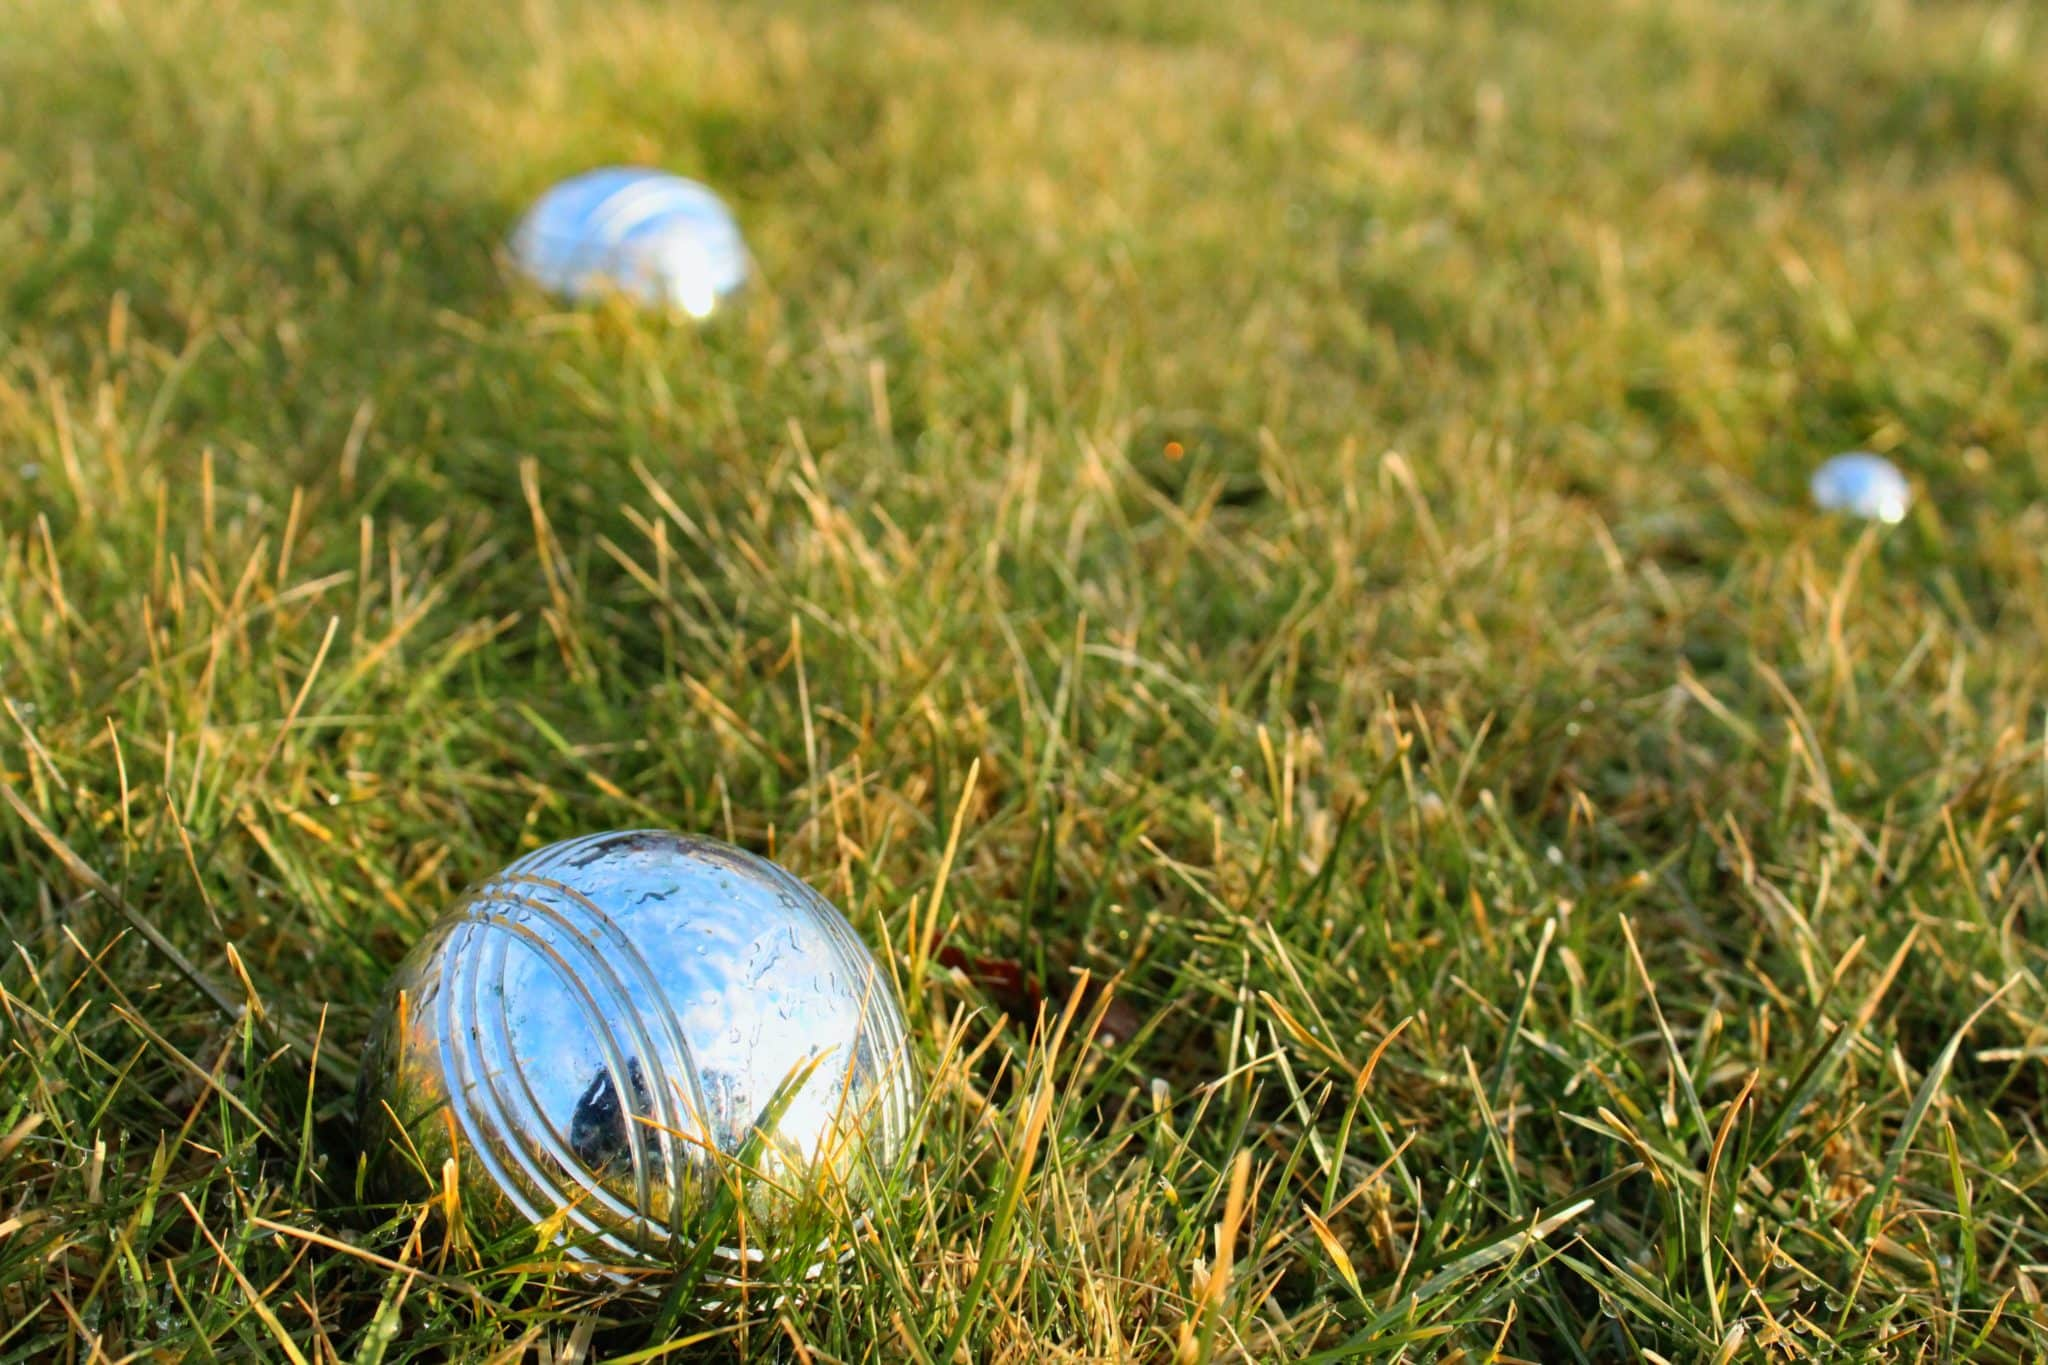 Close up of shiny metal bocce ball in the grass